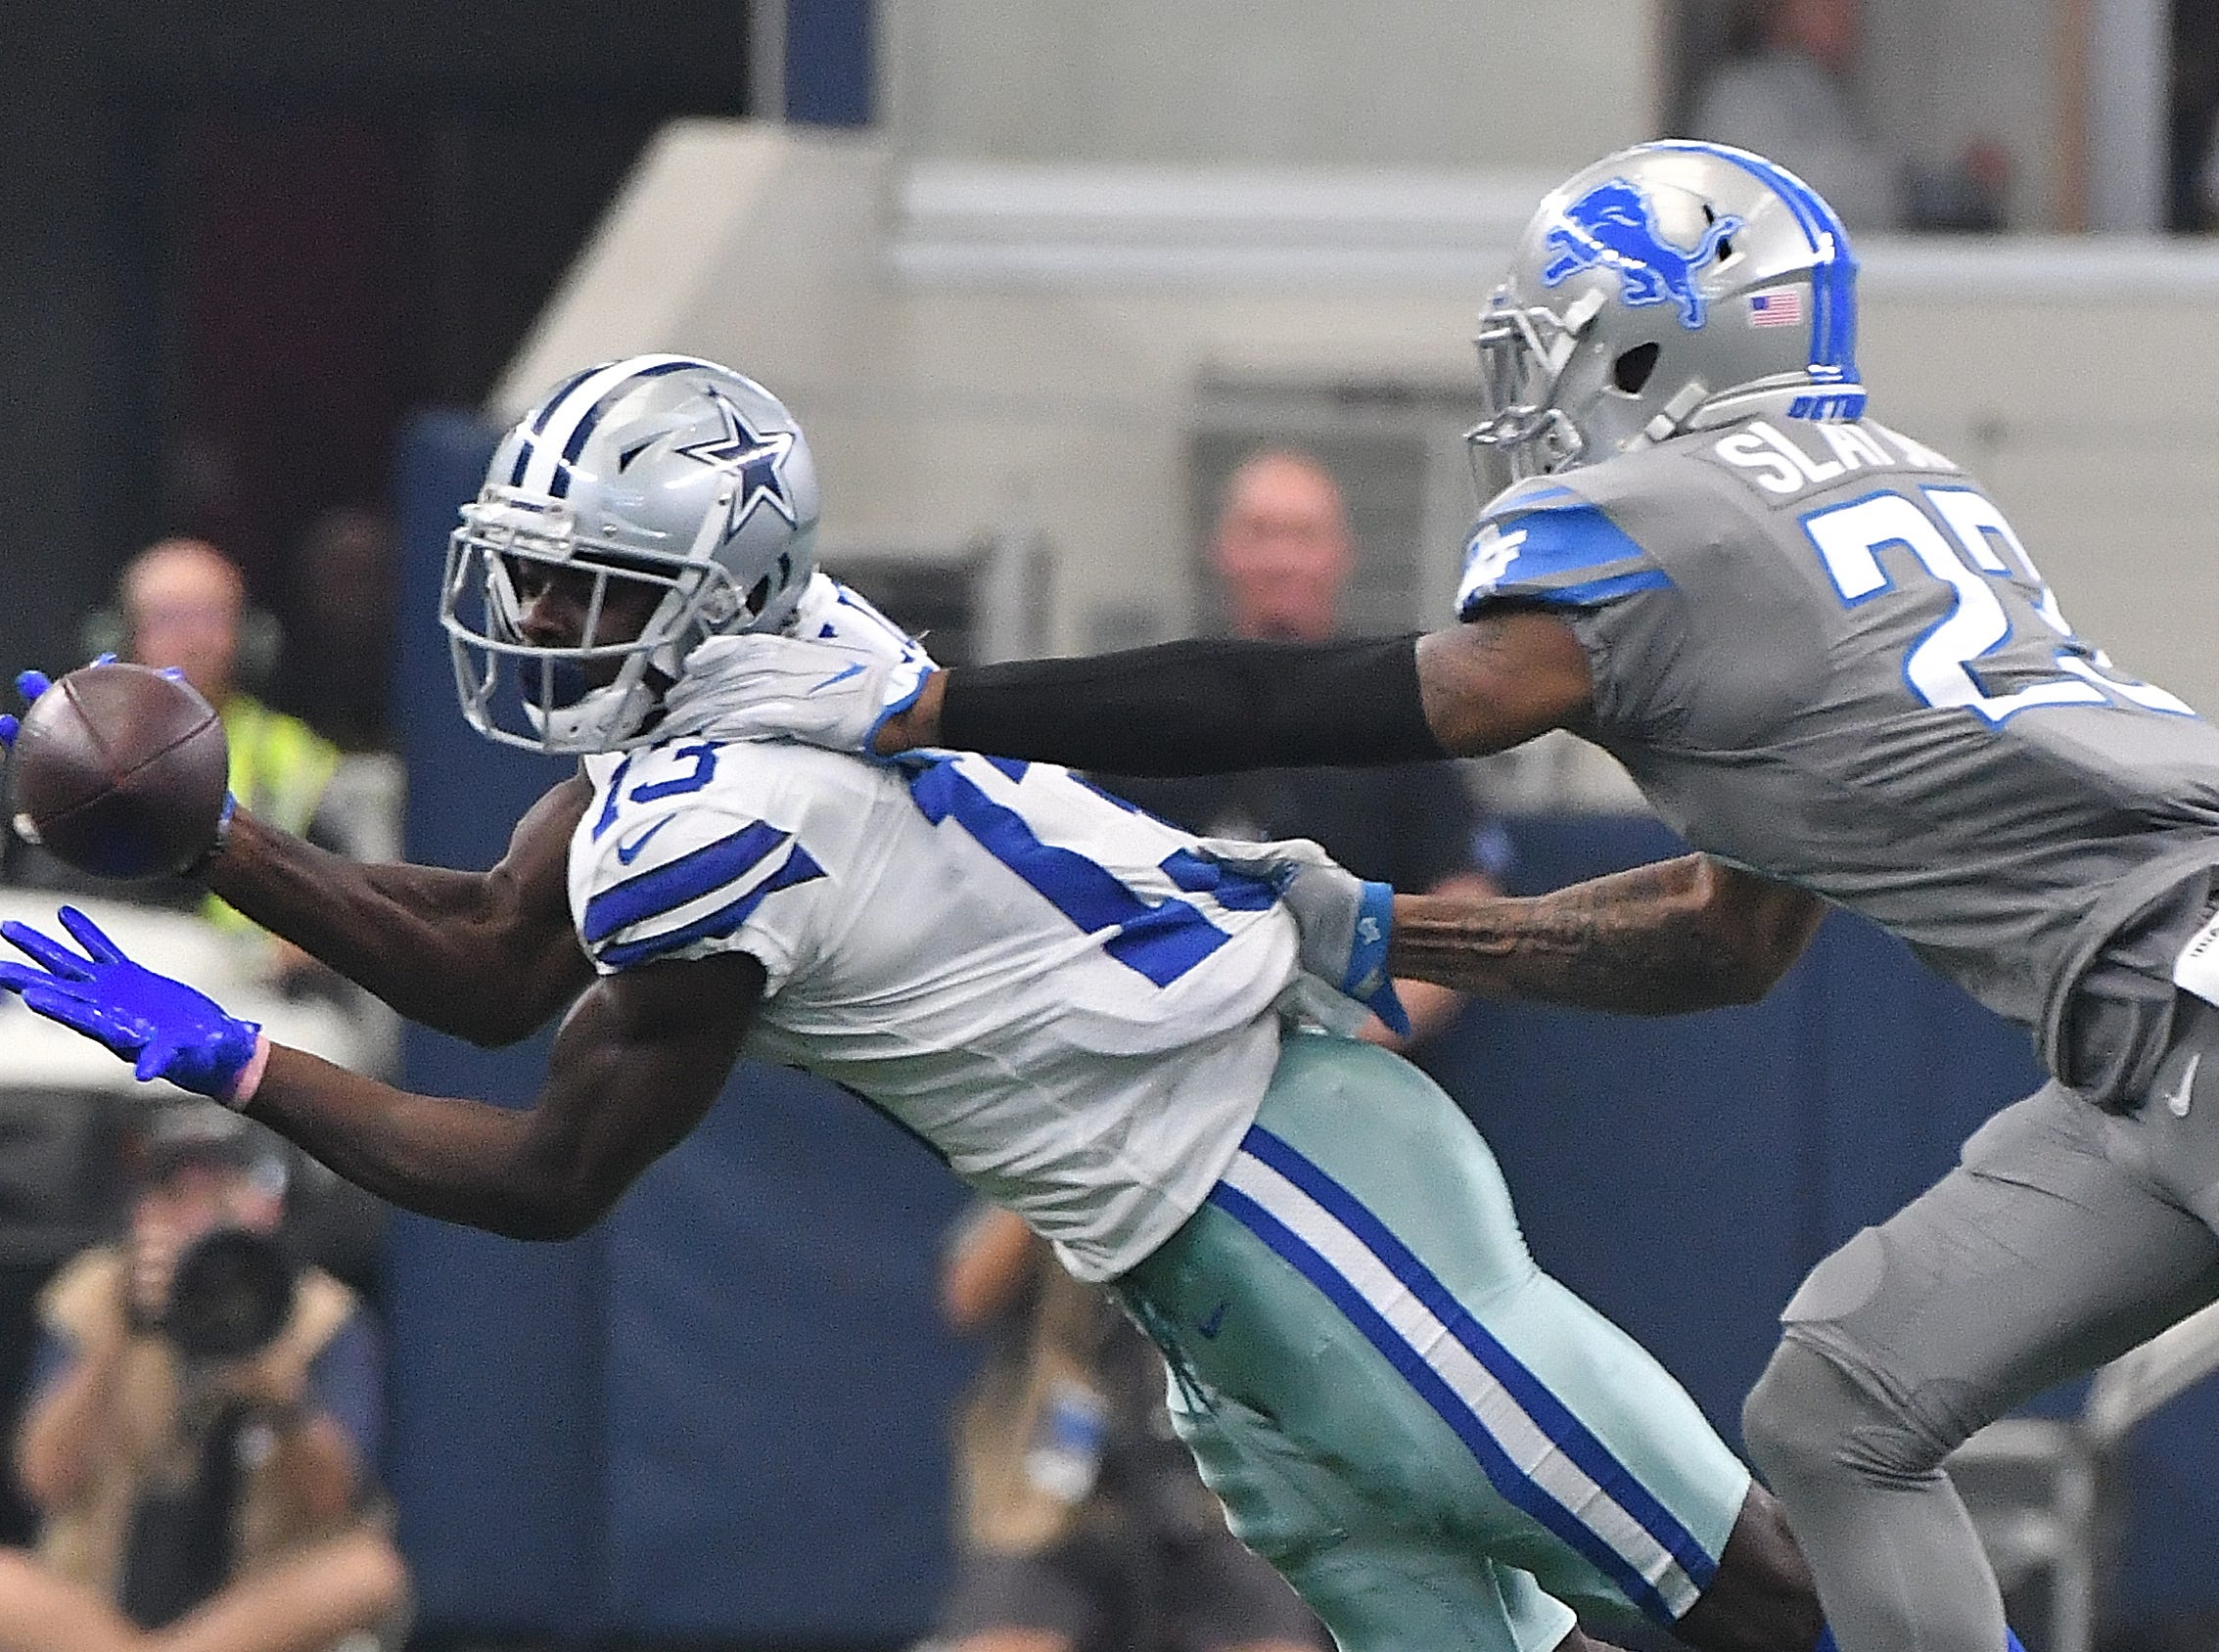 Cowboys' Michael Gallup can't hang onto a long reception with Lions' Darius Slay defending in the fourth quarter.  NFL Detroit Lions vs. Dallas Cowboys at AT&T Stadium in Arlington, Texas on September 30, 2018. (Image by Daniel Mears / The Detroit News)